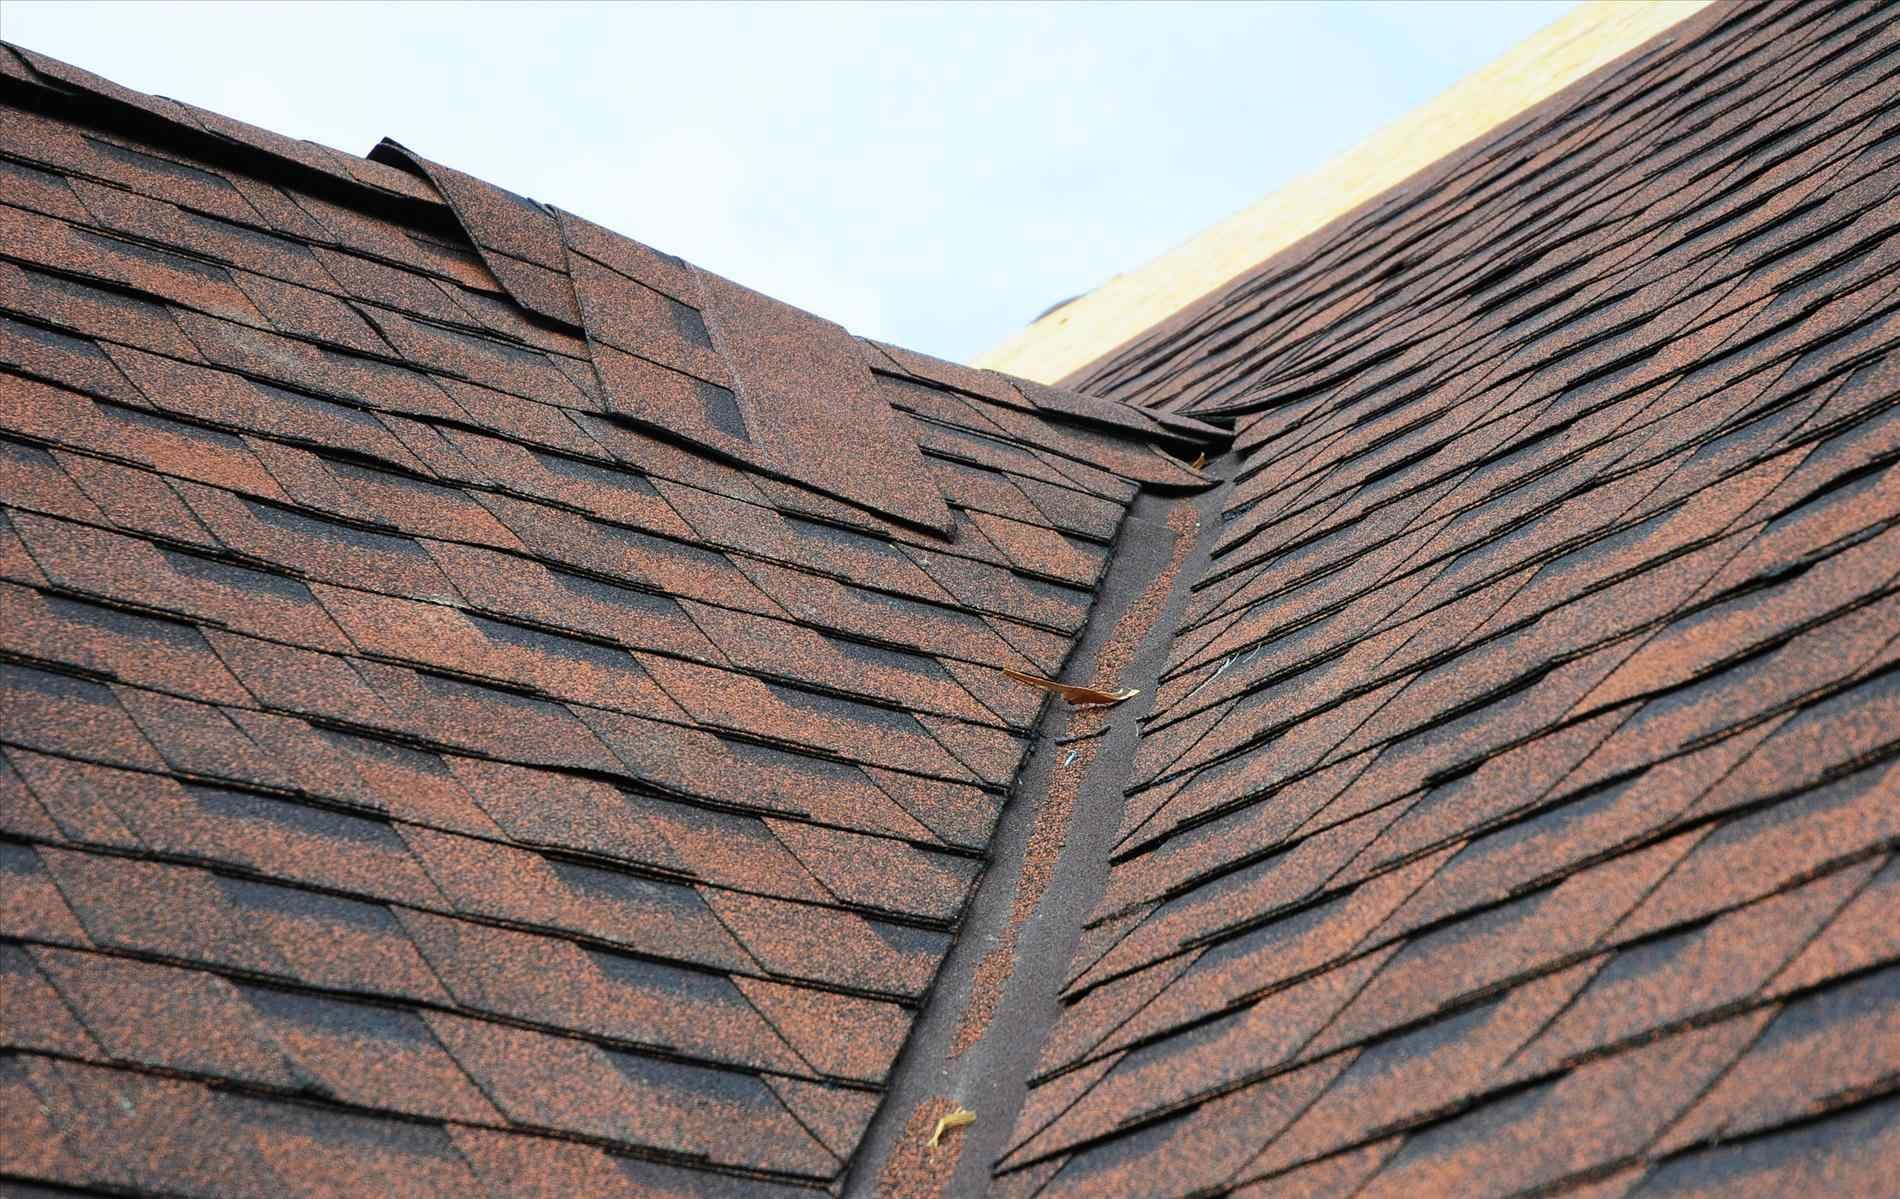 When To Replace Roof Shingles Replace Roof Shingles Fibreglass Roof Roof Repair